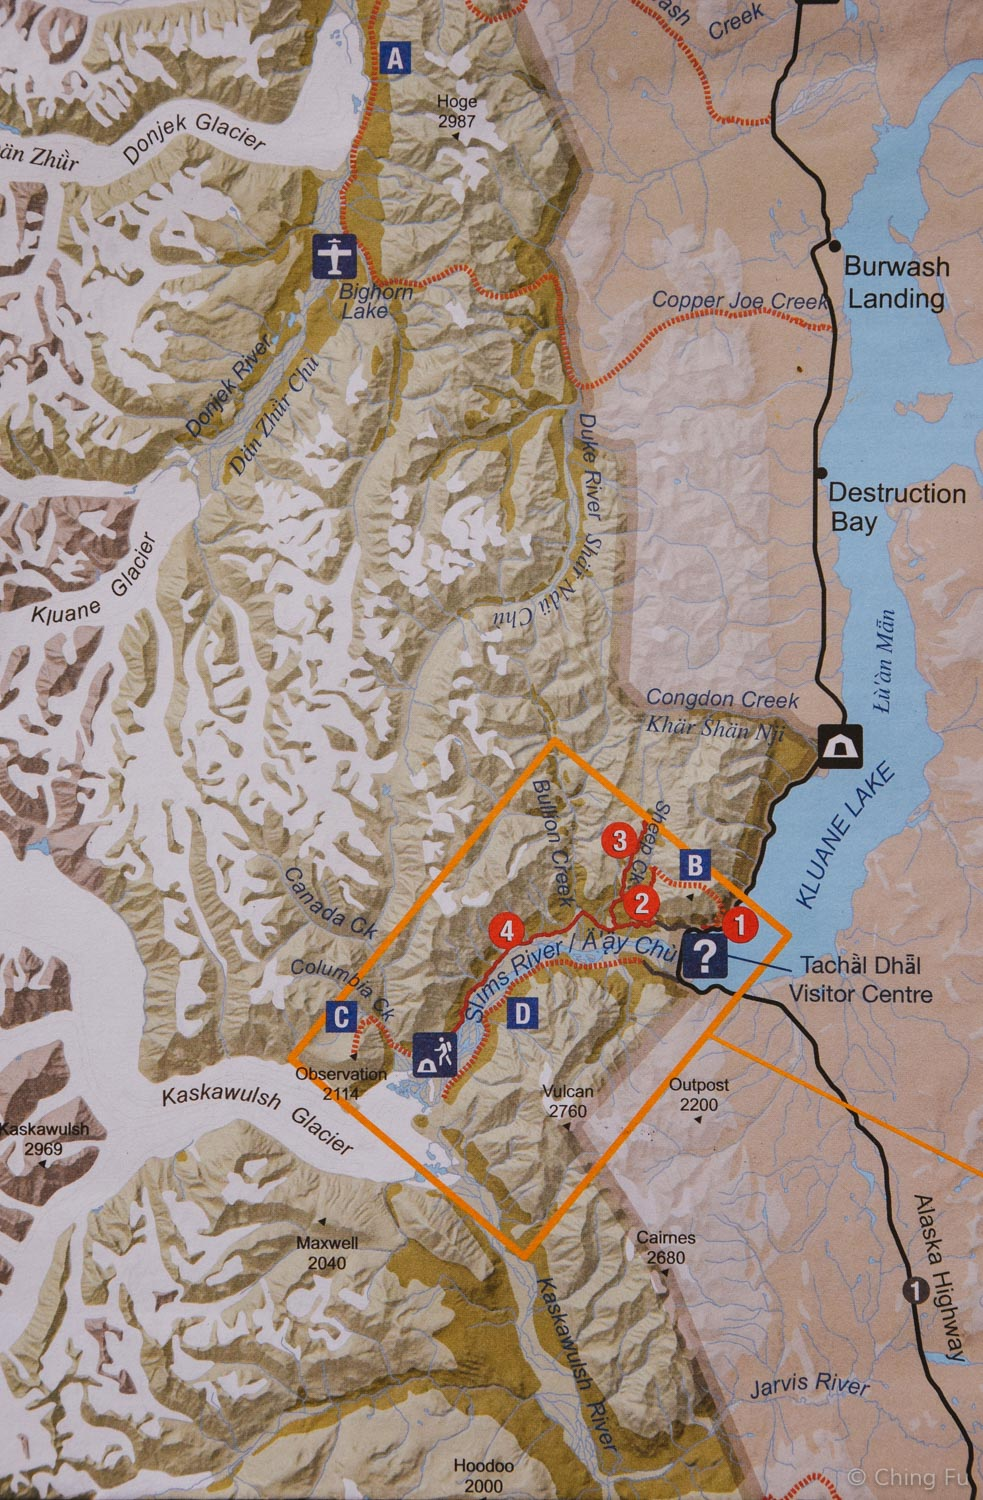 This is a map showing Kaskawulsh Glacier, Slims River, Kluane Lake and the visitor center. It's the south tip of the lake that is drying up.